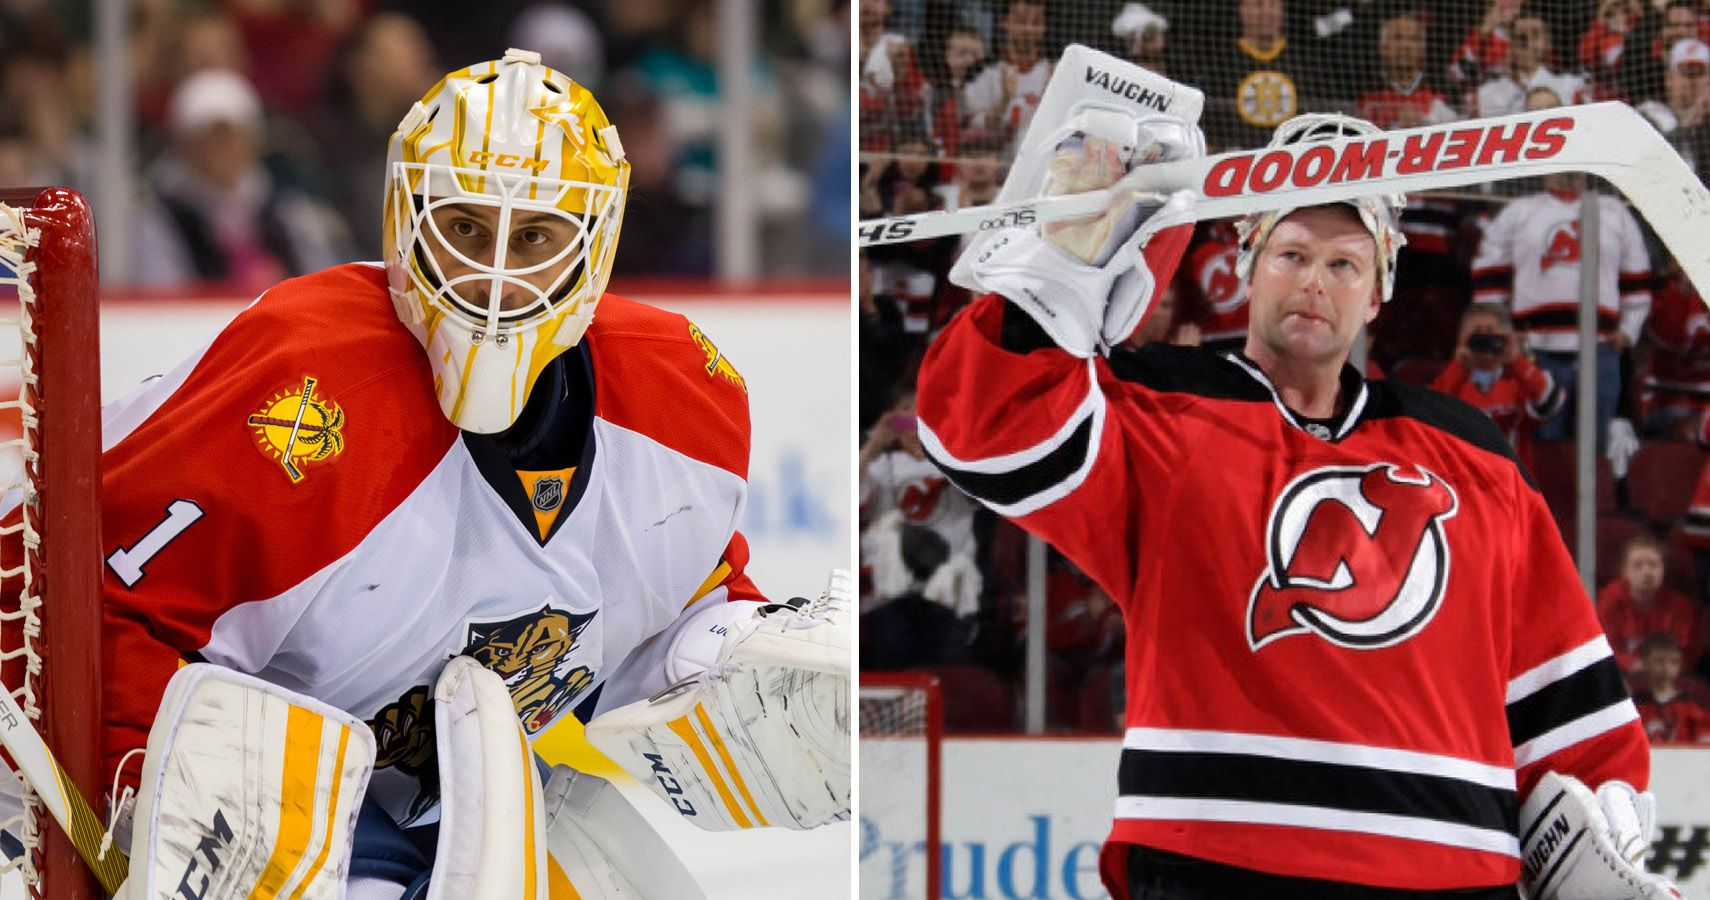 Most Games Played By A Goalie in One NHL Season